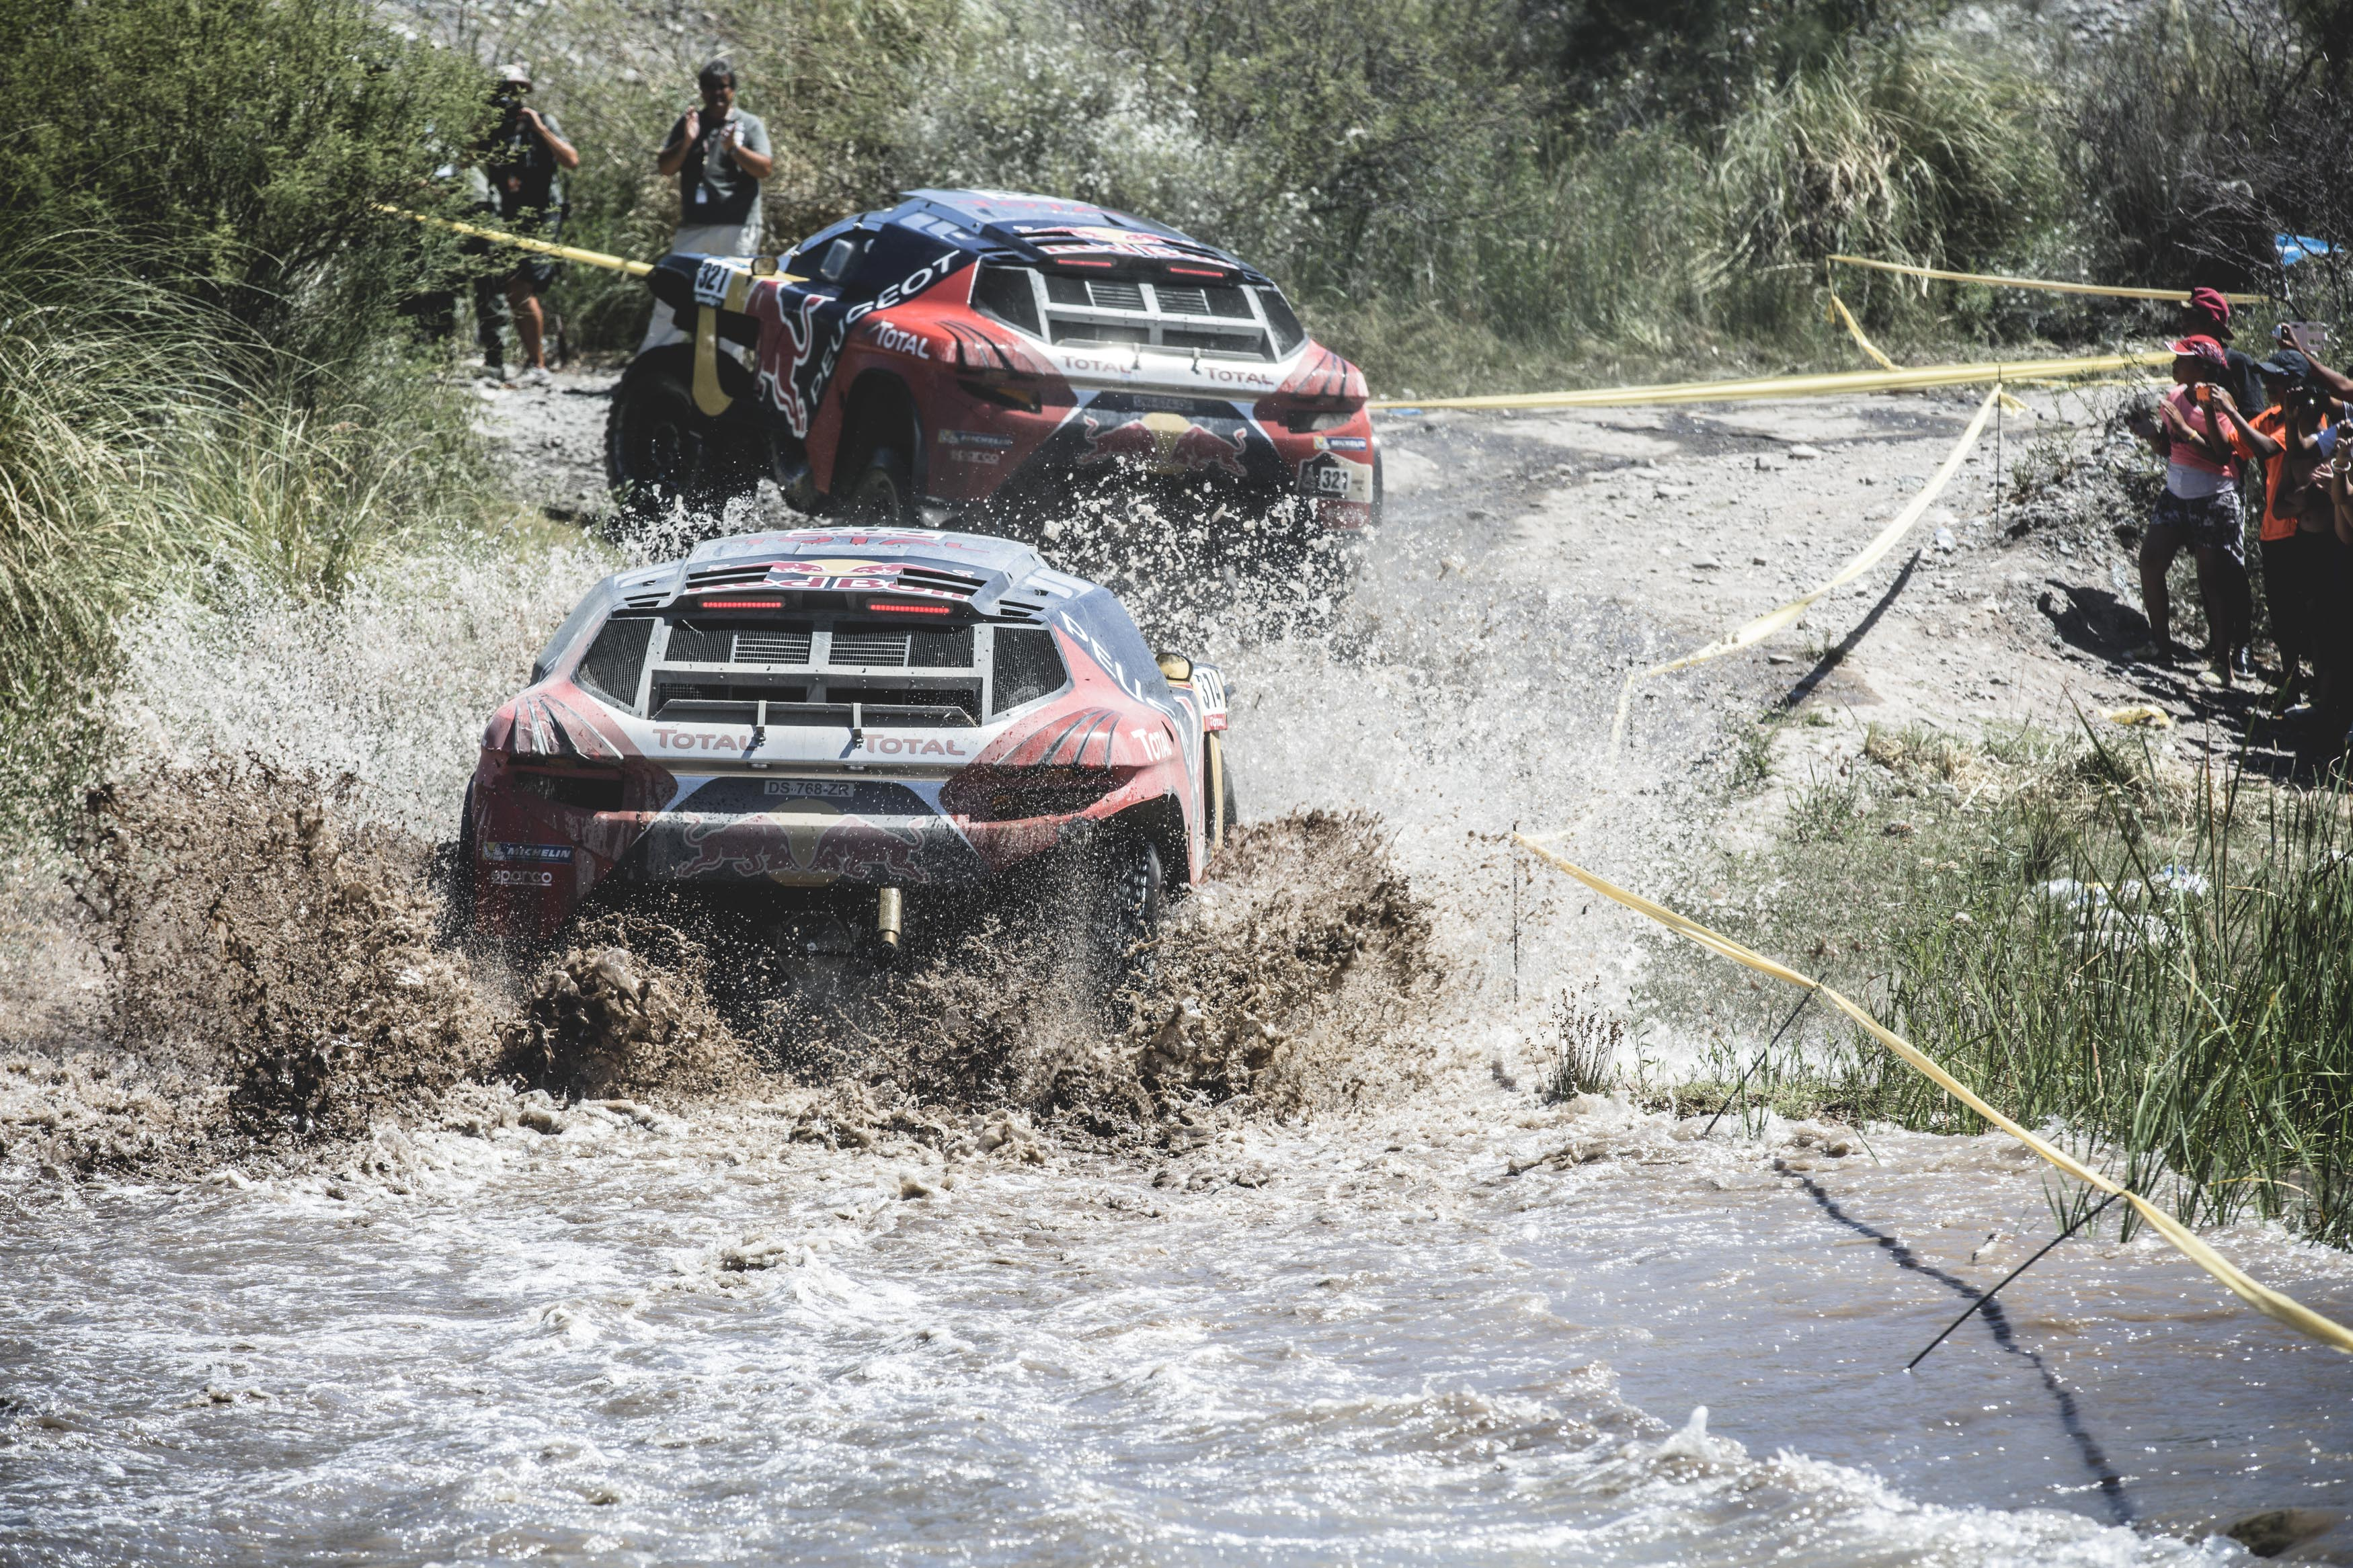 Sebastien Loeb (FRA) from Team Peugeot Total is towed by Cyril Despres (FRA) during stage 11 of Rally Dakar 2016 from La Rioja to San Juan, Argentina on January 14, 2016.